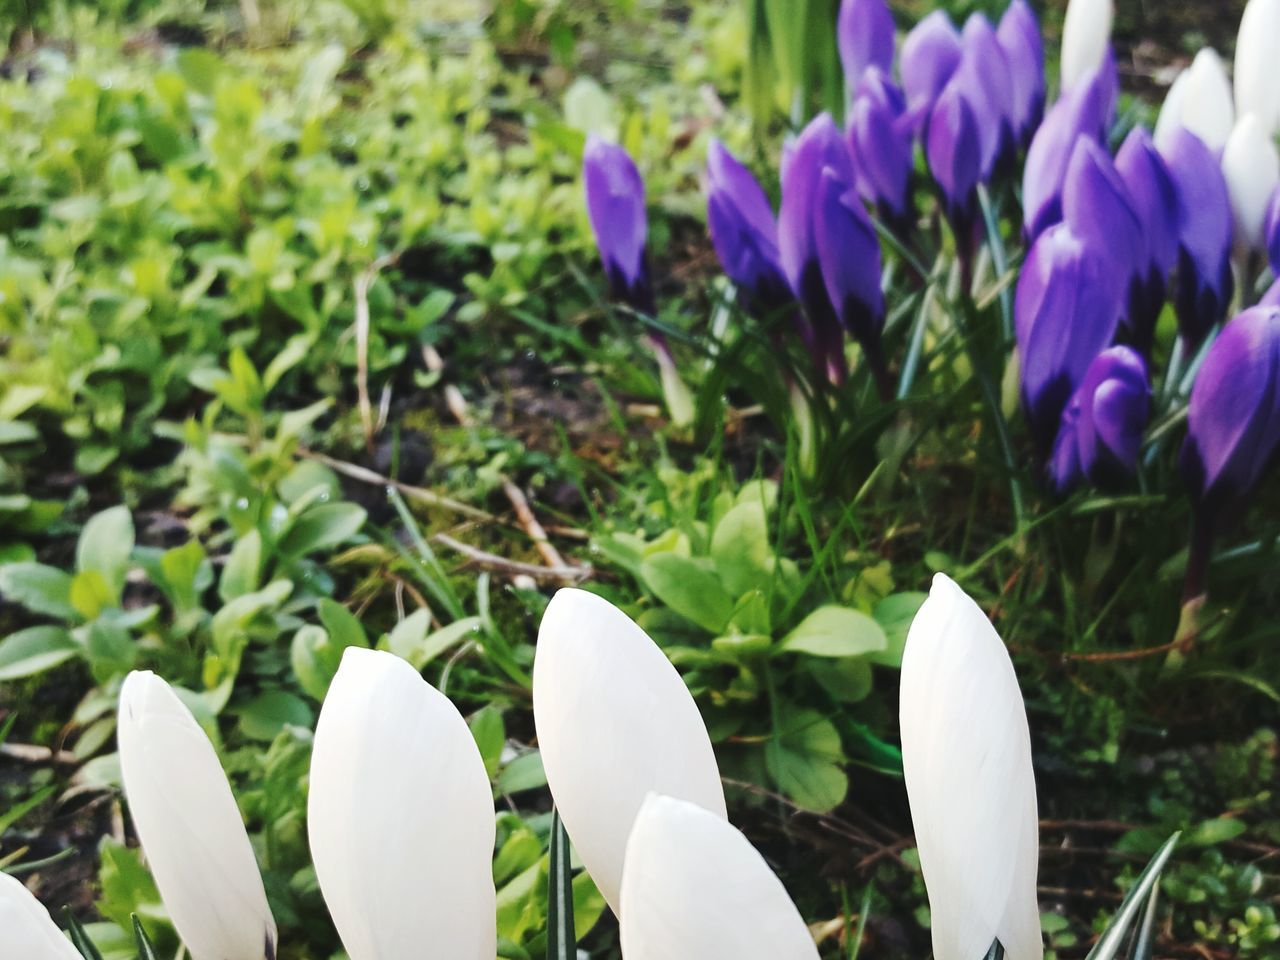 flower, growth, petal, beauty in nature, fragility, nature, freshness, flower head, plant, white color, day, purple, field, no people, close-up, focus on foreground, blooming, outdoors, snowdrop, crocus